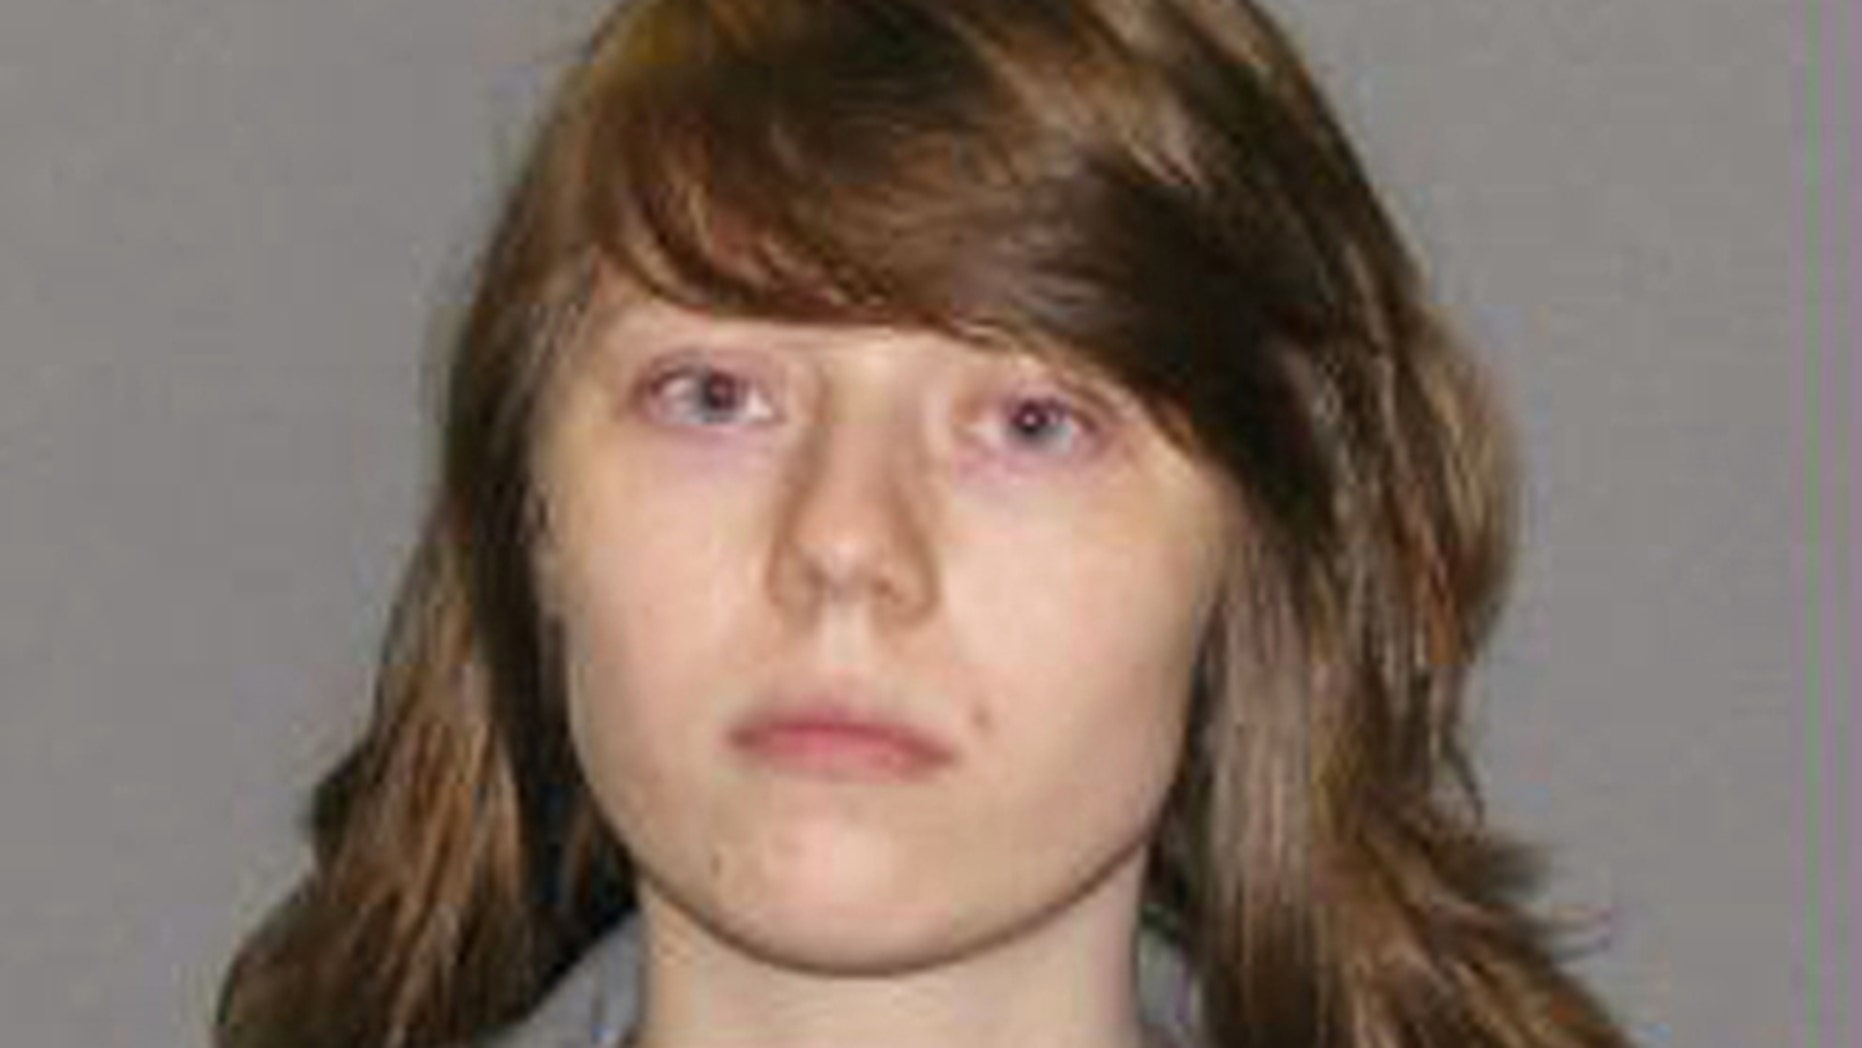 """FILE - This Feb. 8, 2012 photo provided by the Missouri Department of Corrections shows Alyssa Bustamante, who was sentenced to life in prison for the October 2009 slaying of 9-year-old Elizabeth Olten in St. Martins, a small town just west of Jefferson City, Mo. Bustamante, who described killing her neighbor girl as an """"ahmazing"""" thrill,  was to appear in court Thursday, Jan. 30, 2014 to argue that her guilty plea should be set aside because it was made under the threat of a mandatory life prison sentence. (AP Photo/Missouri Department of Corrections, File)"""